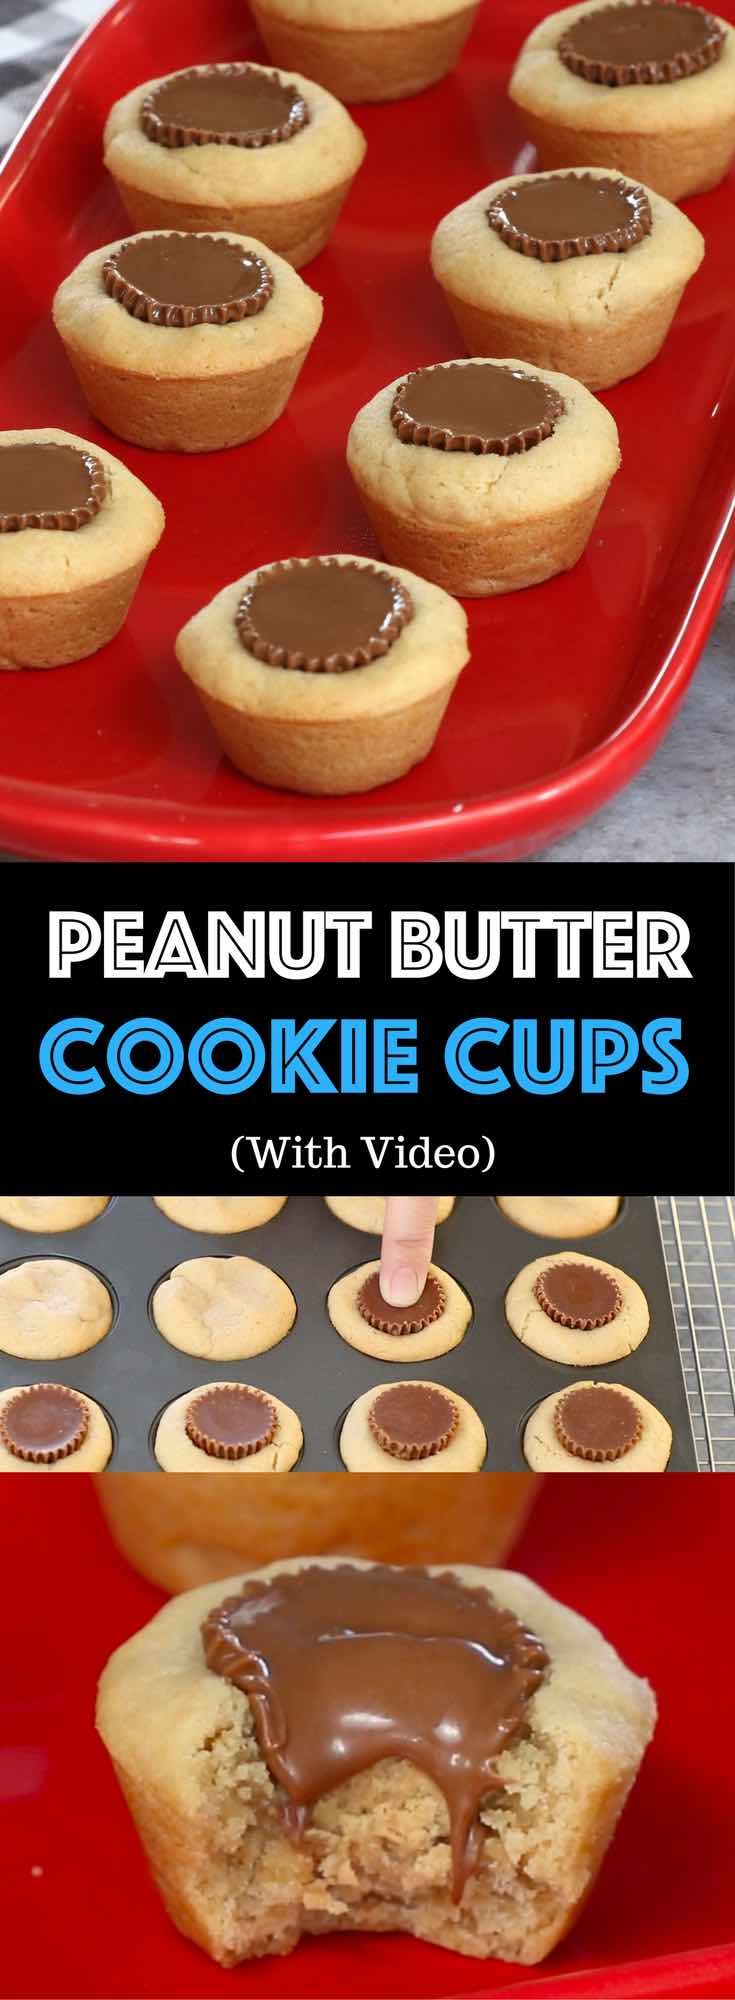 Peanut Butter Cup Cookies –Unbelievably delicious desserts or snacks recipe that's fool proof. Miniature Reese's peanut butter cups stuffed inside soft and chewy cookie cups, creating wonderful cookie cups that melt in your mouth. All you need is only a few simple ingredients. Fun recipe to make with kids. Quick and Easy recipe that takes only 25 minutes. Dessert, Party Food. Vegetarian. Video recipe. | Tipbuzz.com